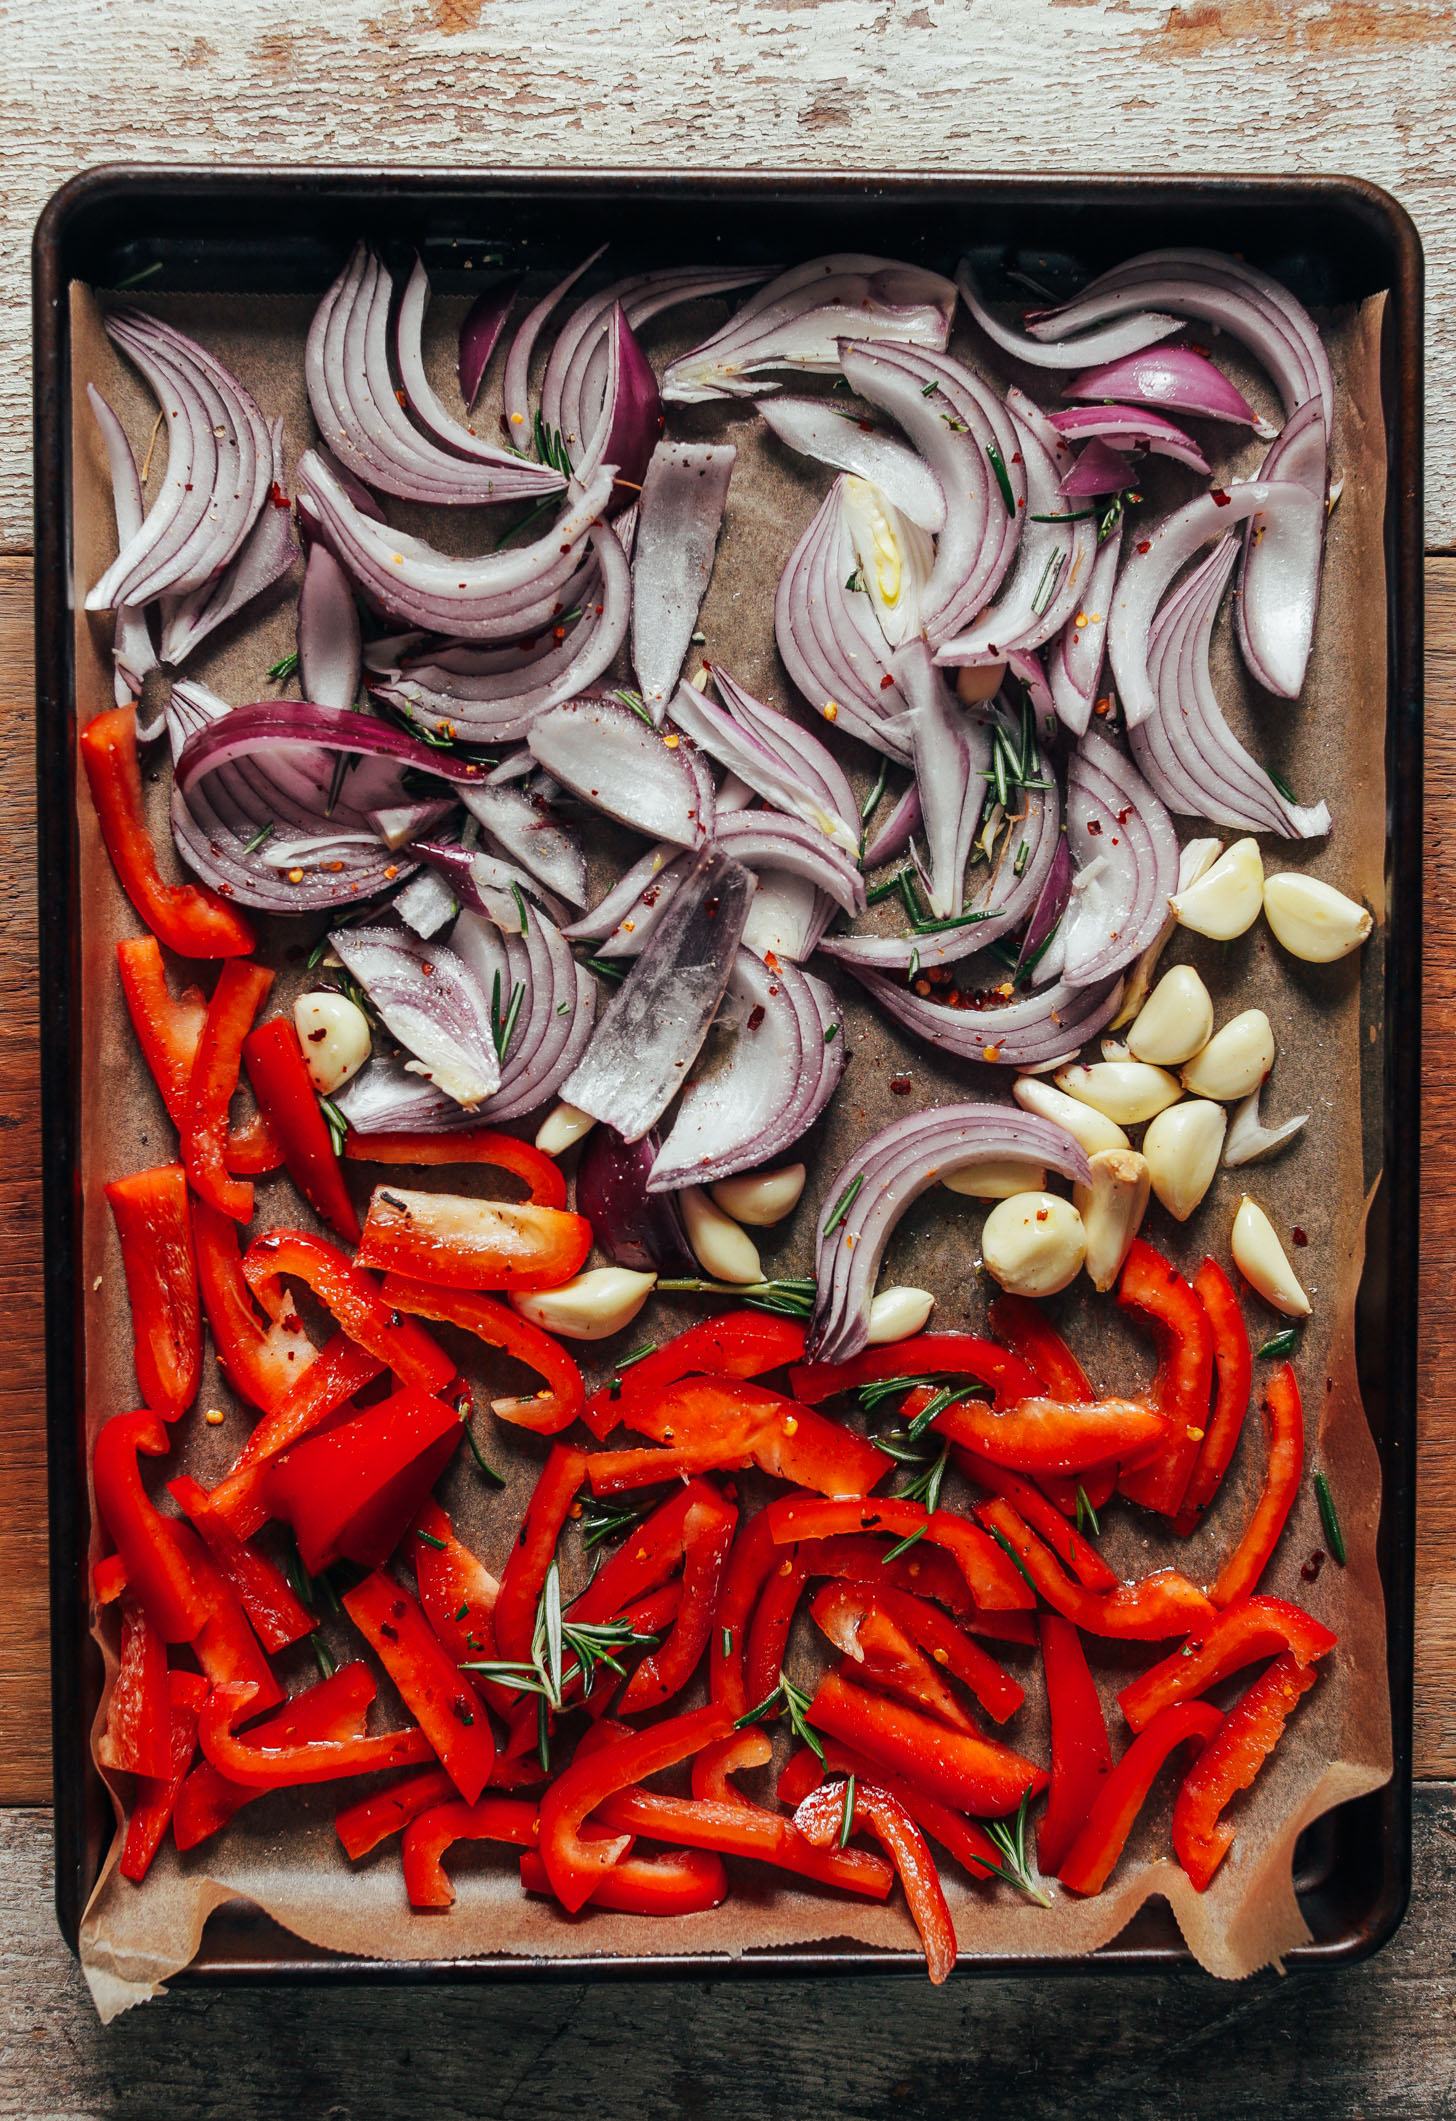 Parchment-lined baking sheet with peeled garlic, red onion, red bell pepper, and rosemary ready to be roasted